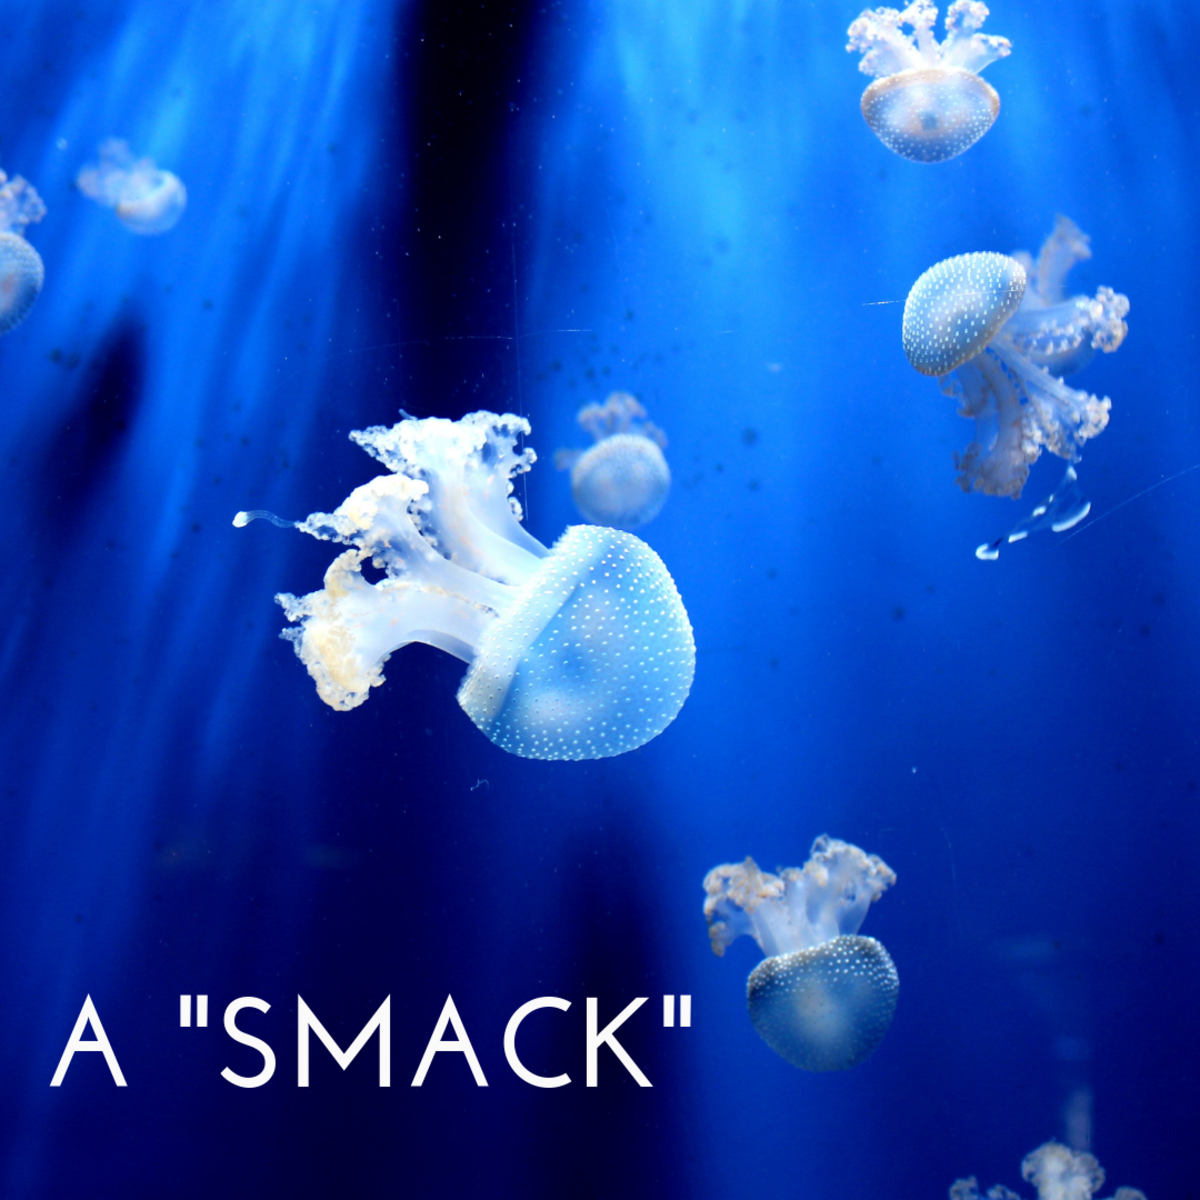 A smack of jellyfish.